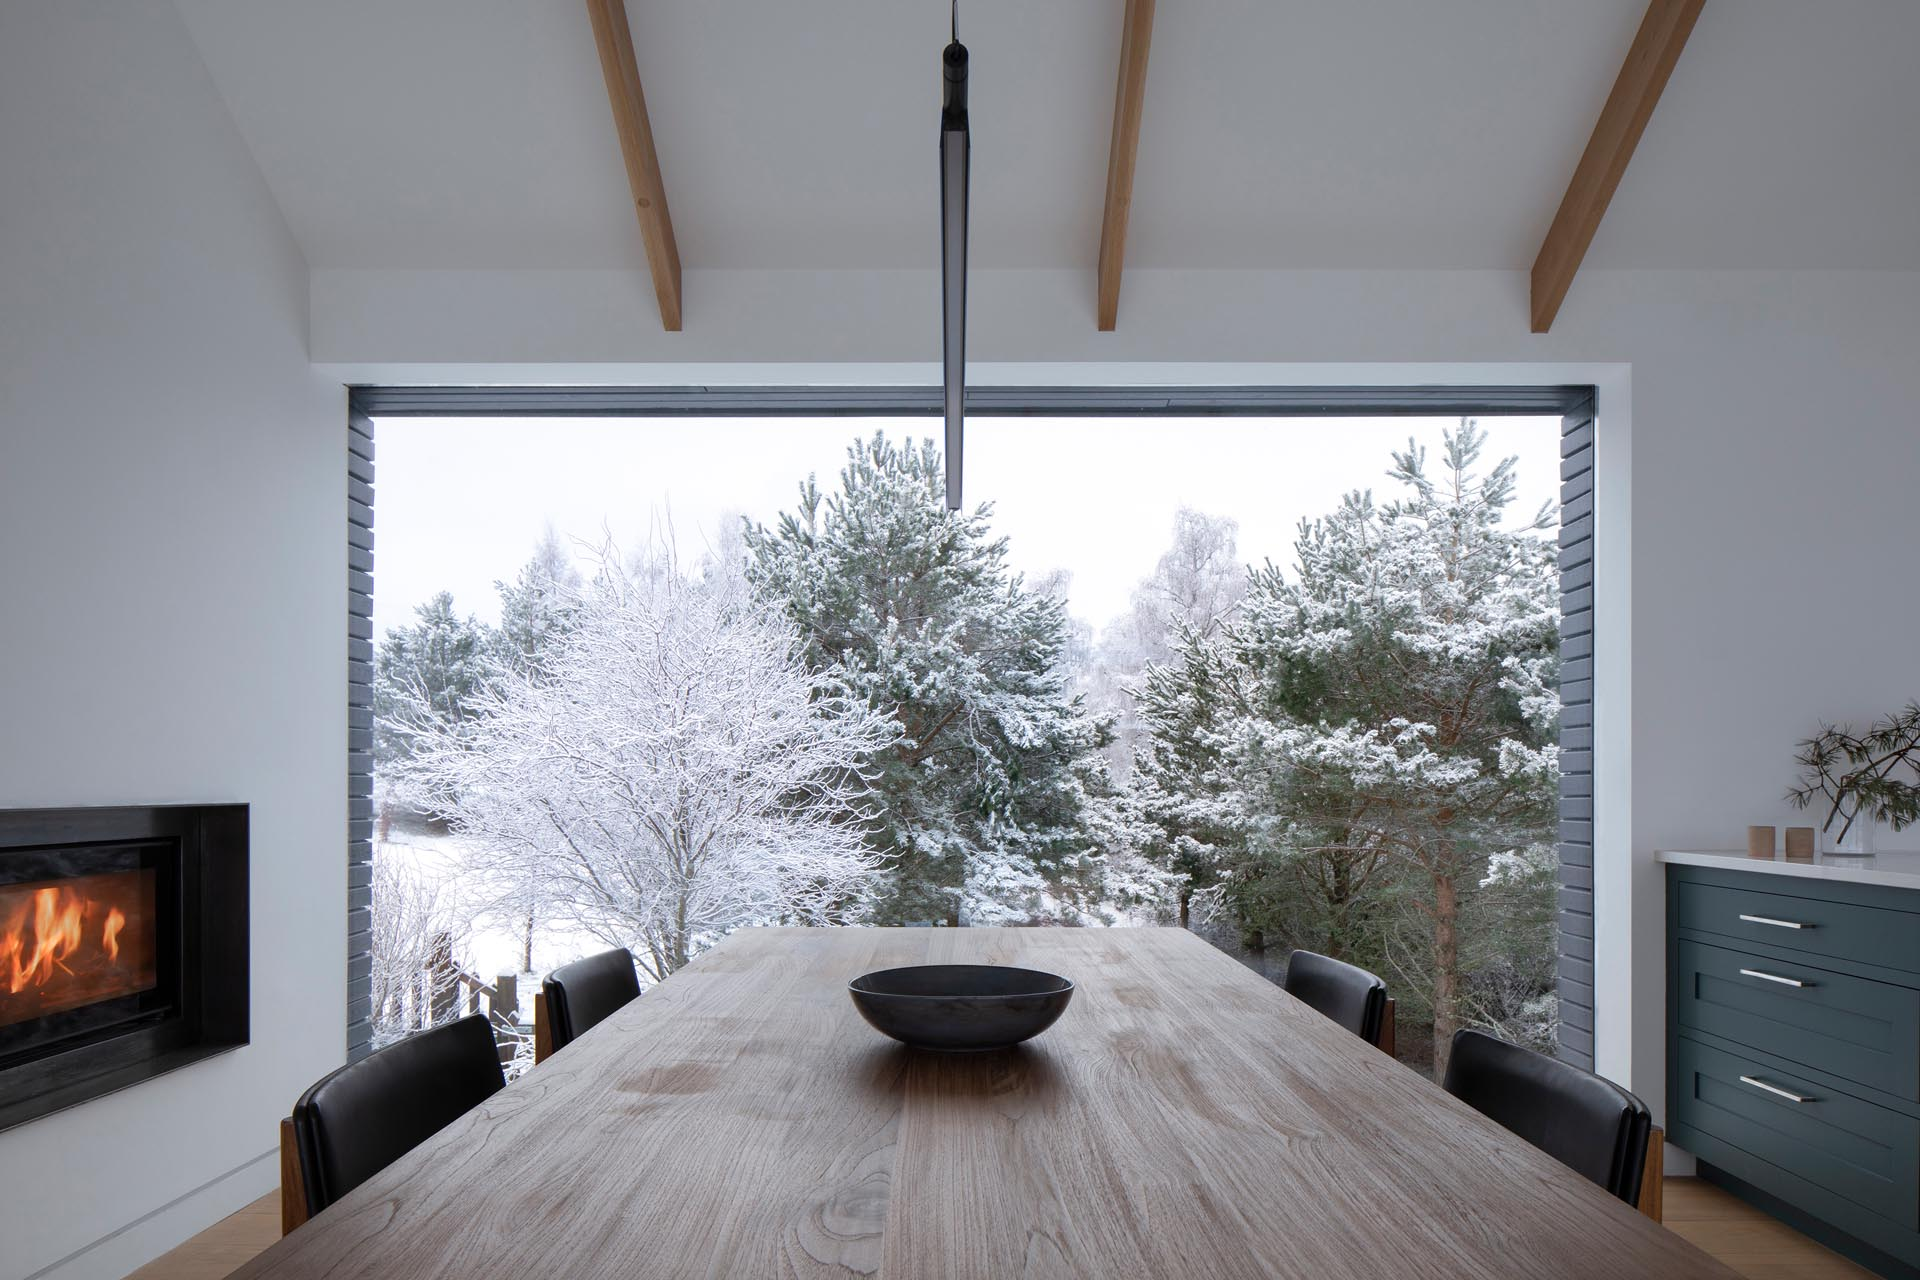 A modern dining room that enjoys a picturesque view of the trees.